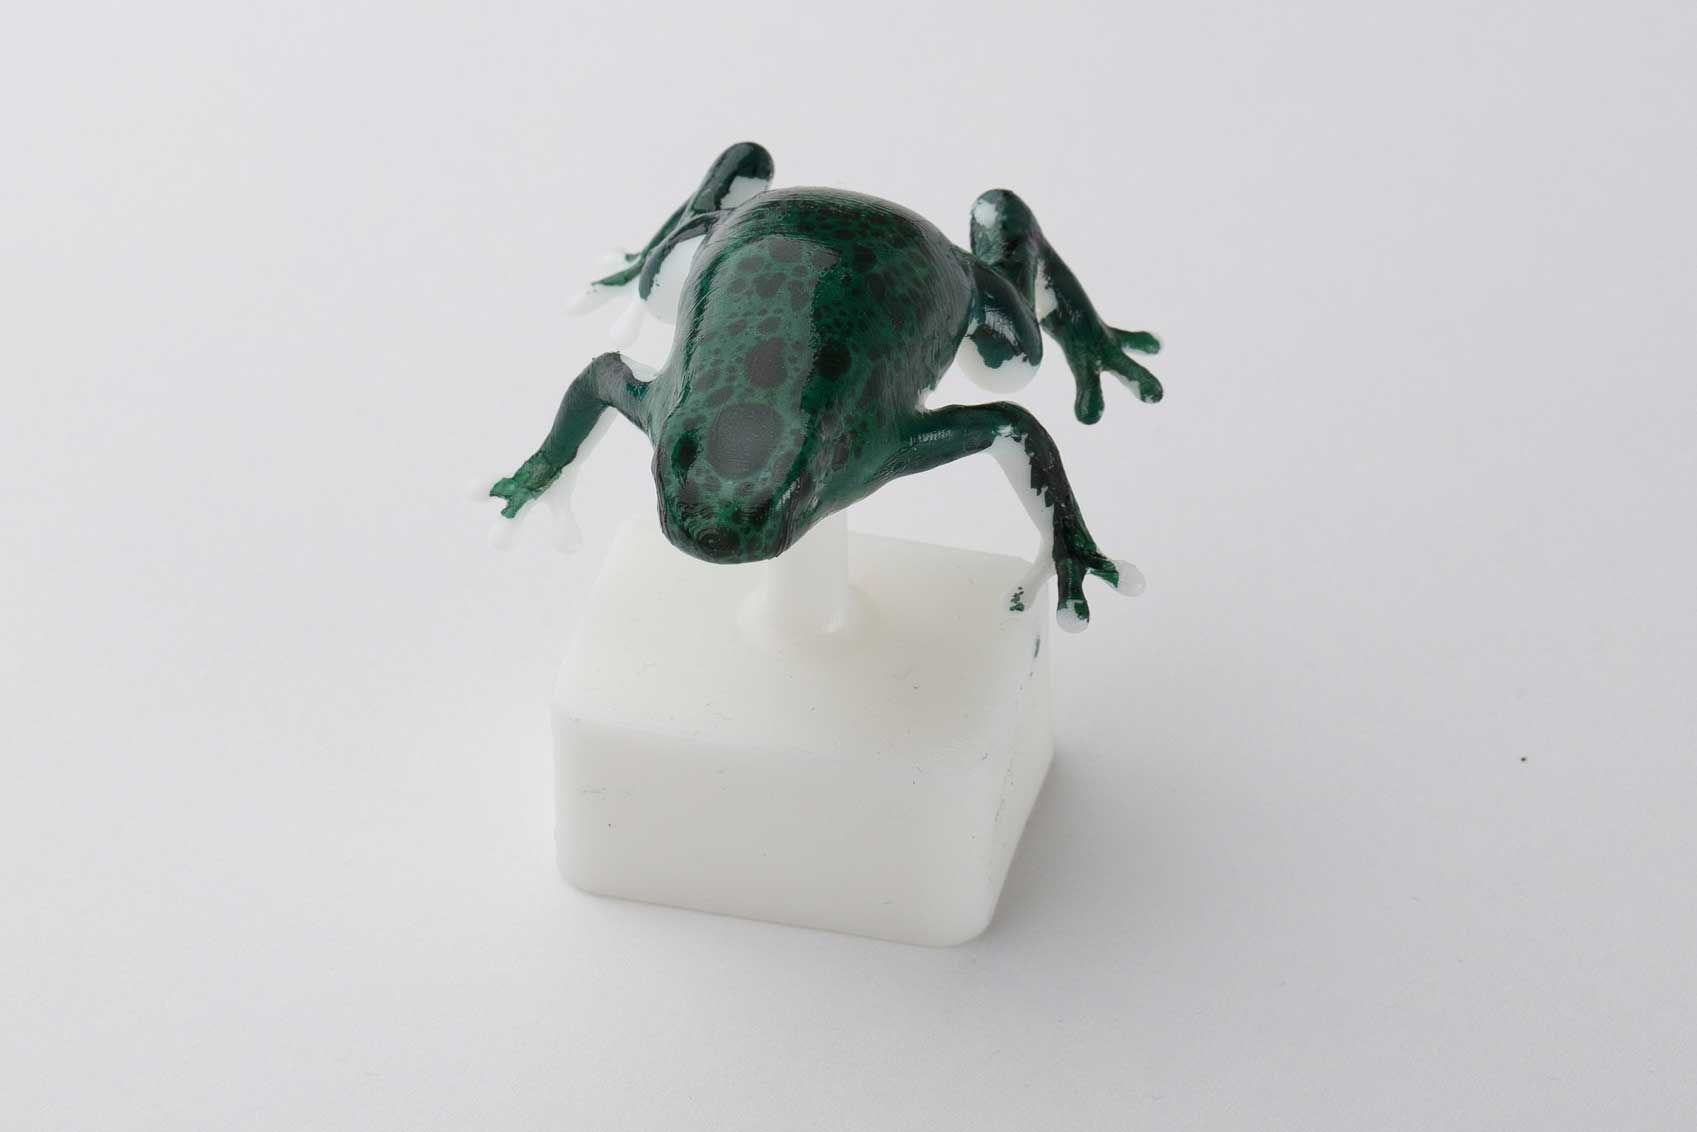 This frog model was used to demonstrate challenging geometry with big variations in slope.